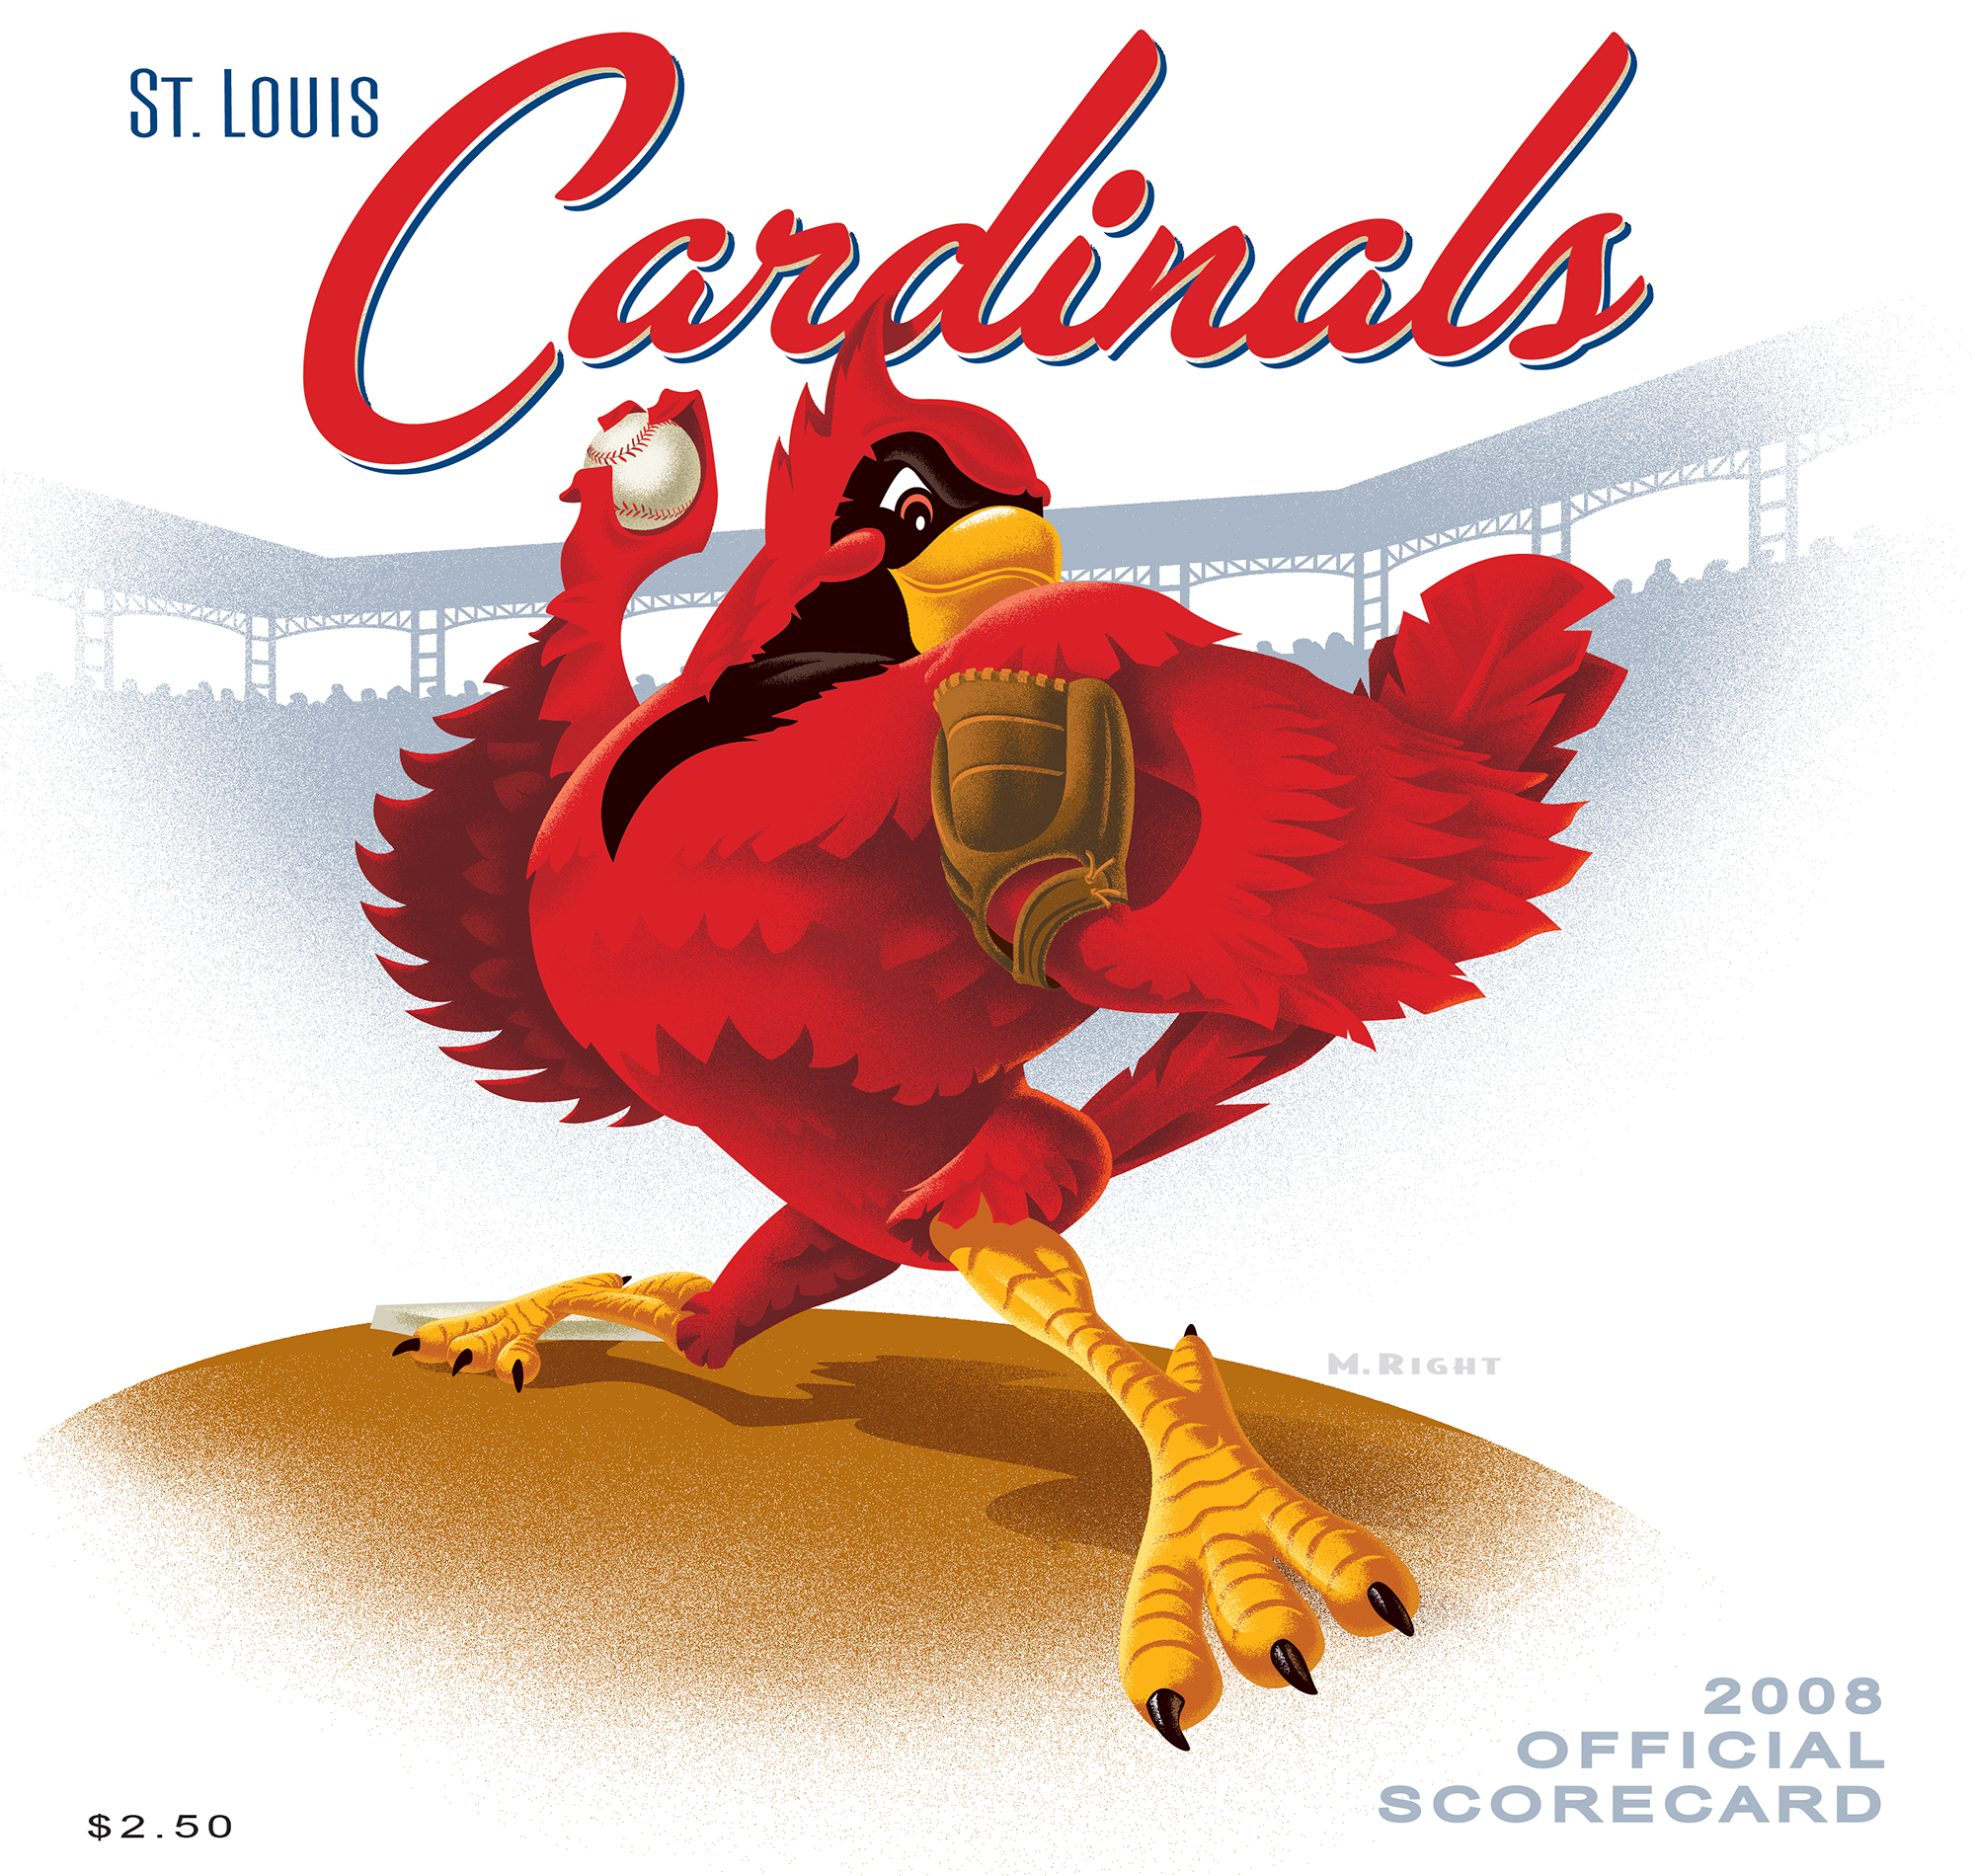 2008 Cardinals Official Scorecard